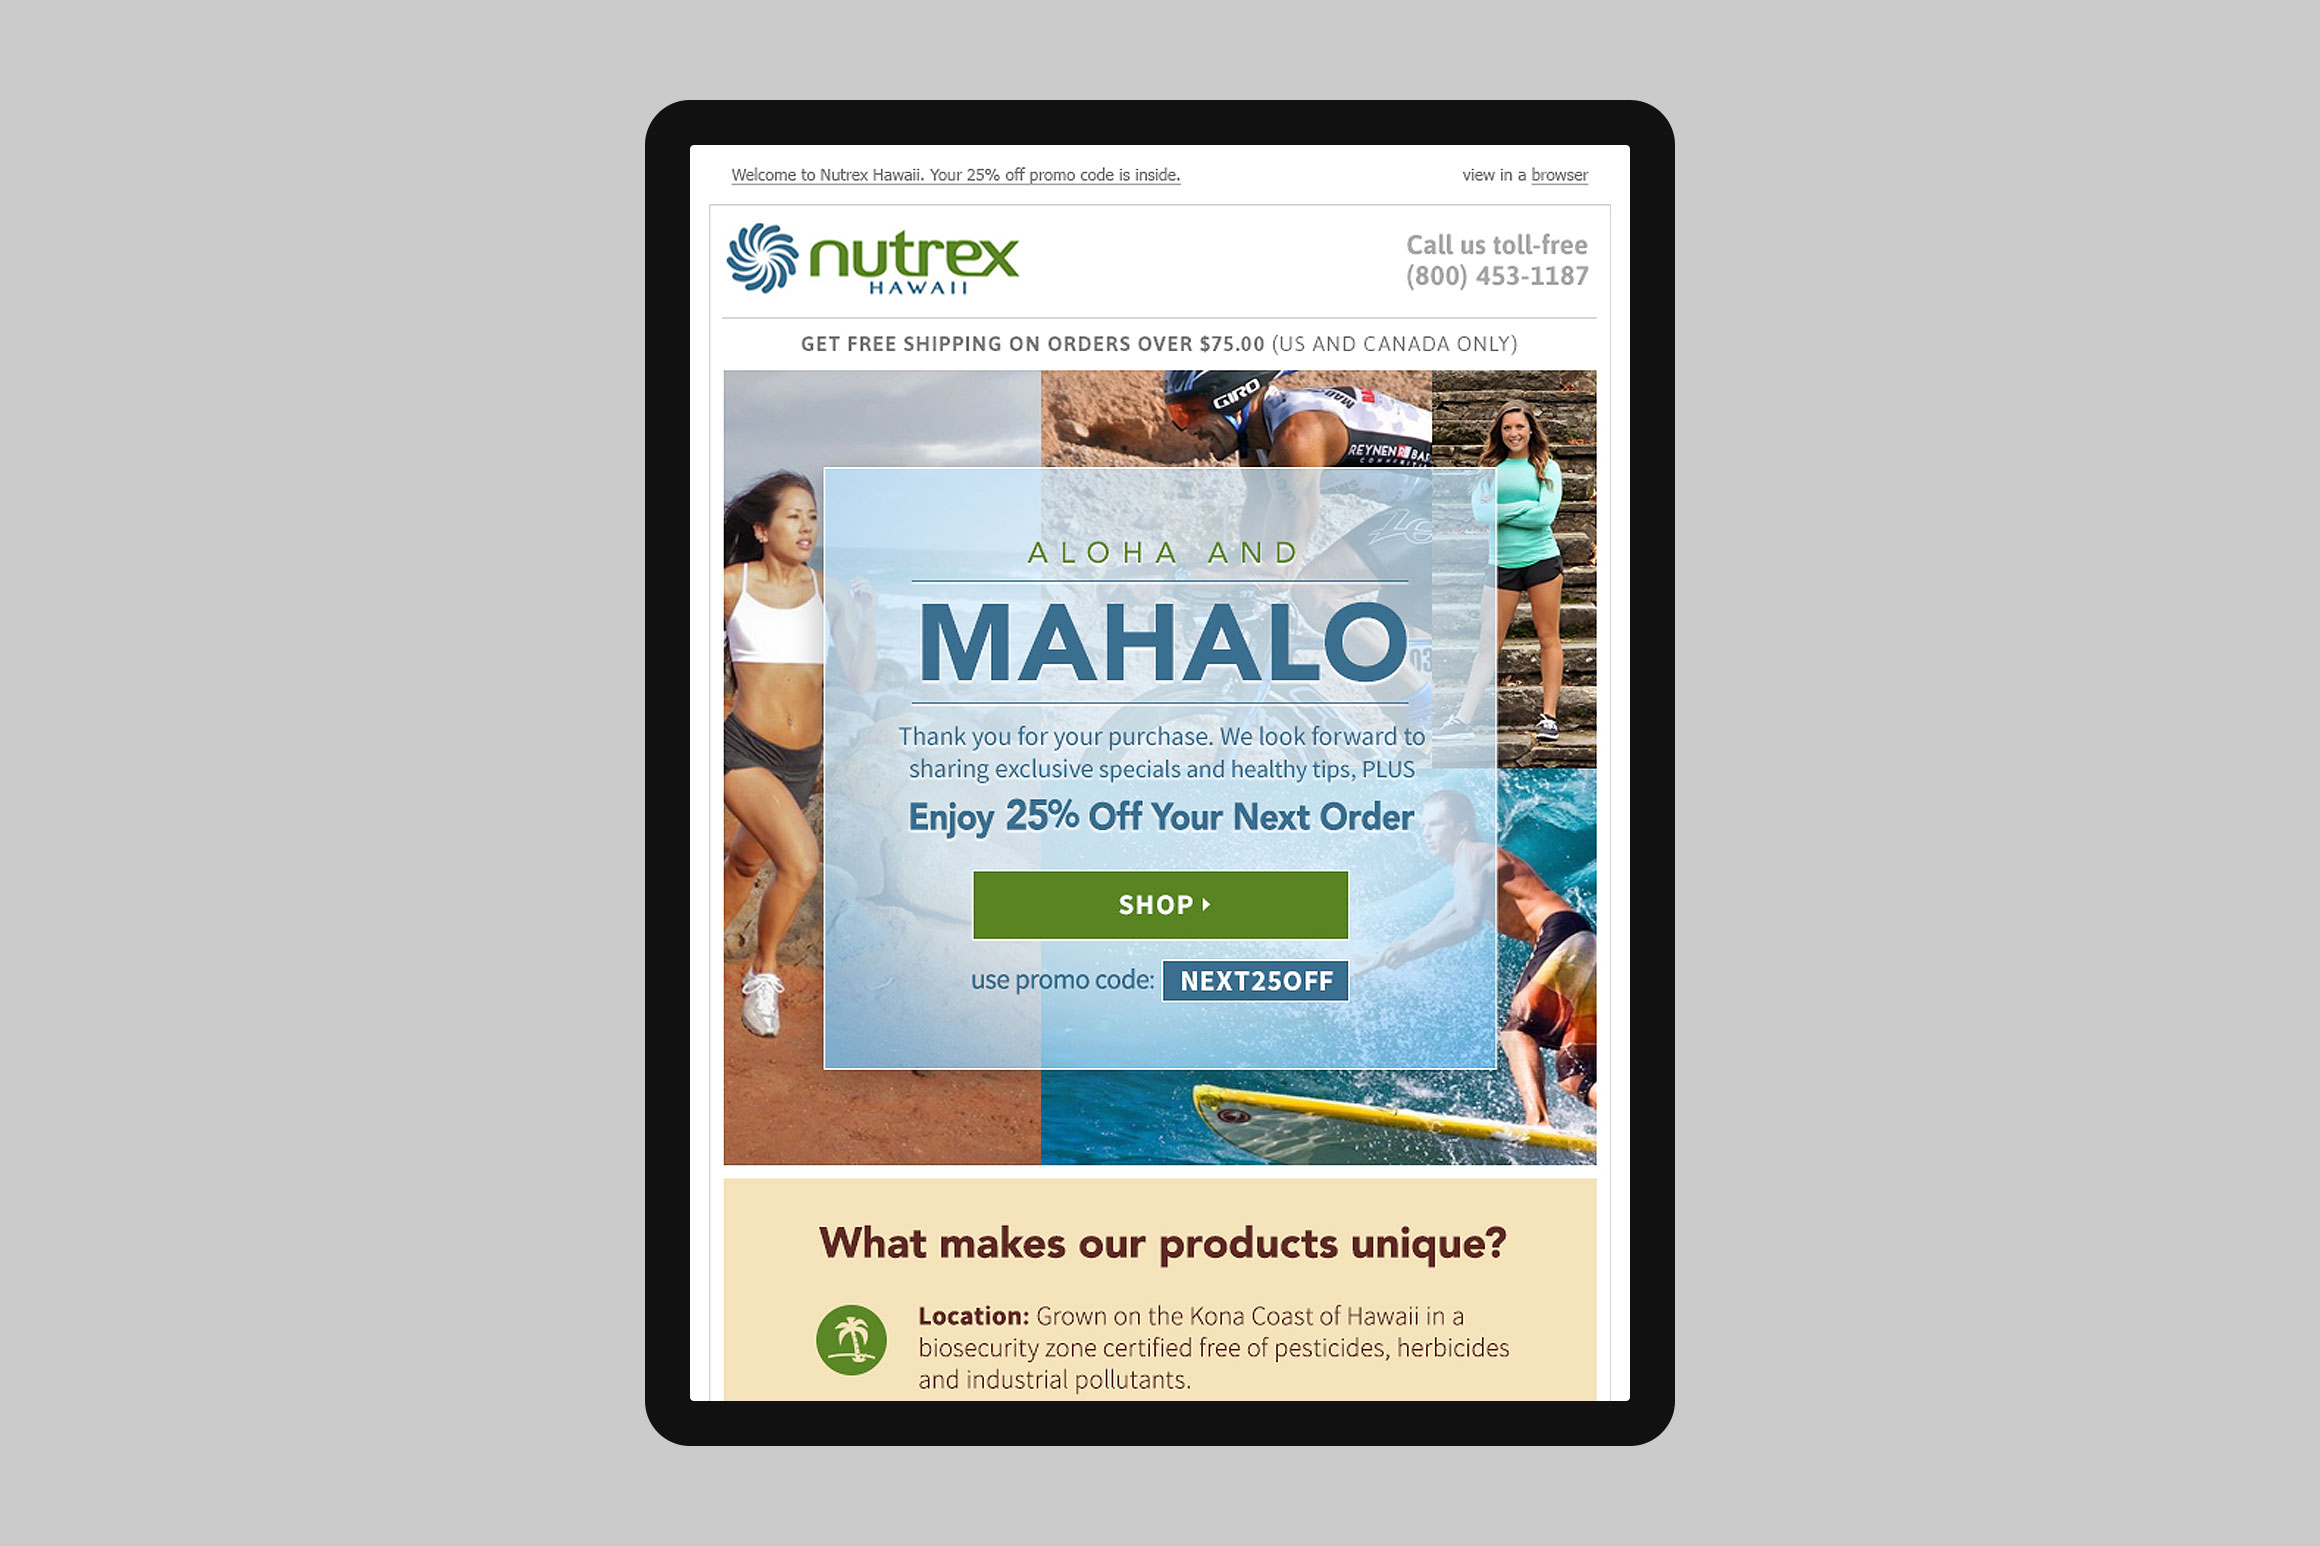 Nutrex Hawaii Email Marketing